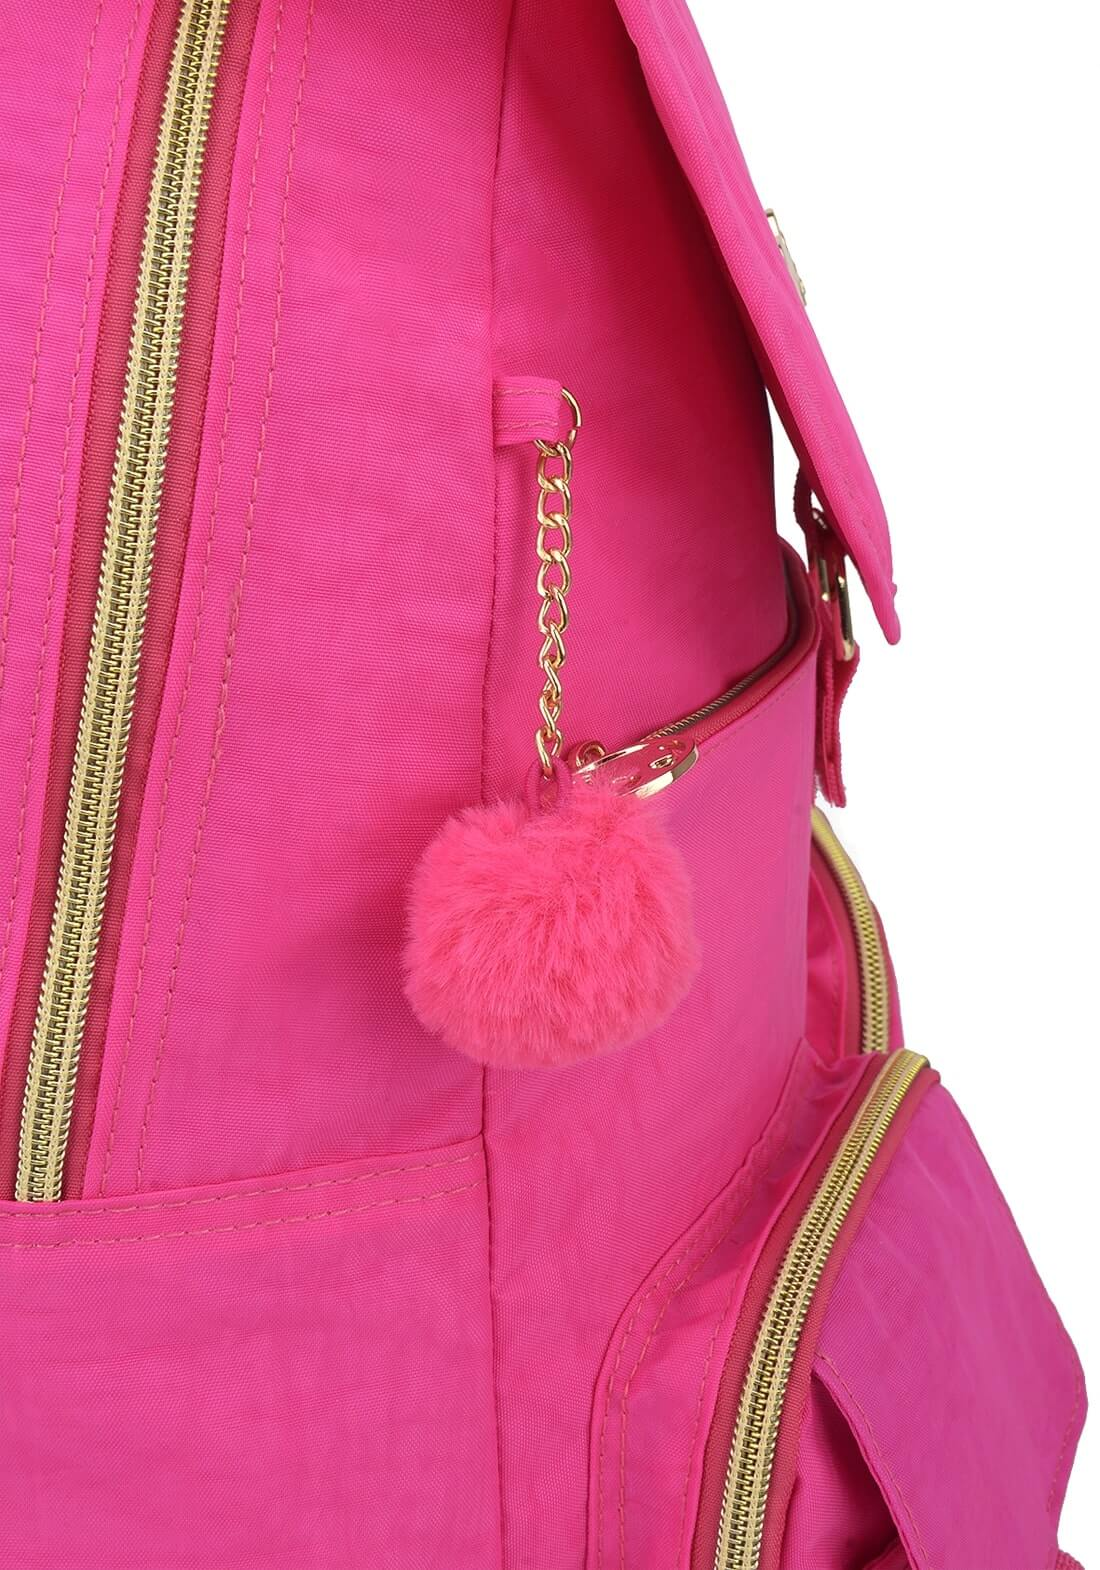 Mochila Costas Barbie Notebook Rosa Pink Original Pom Pom